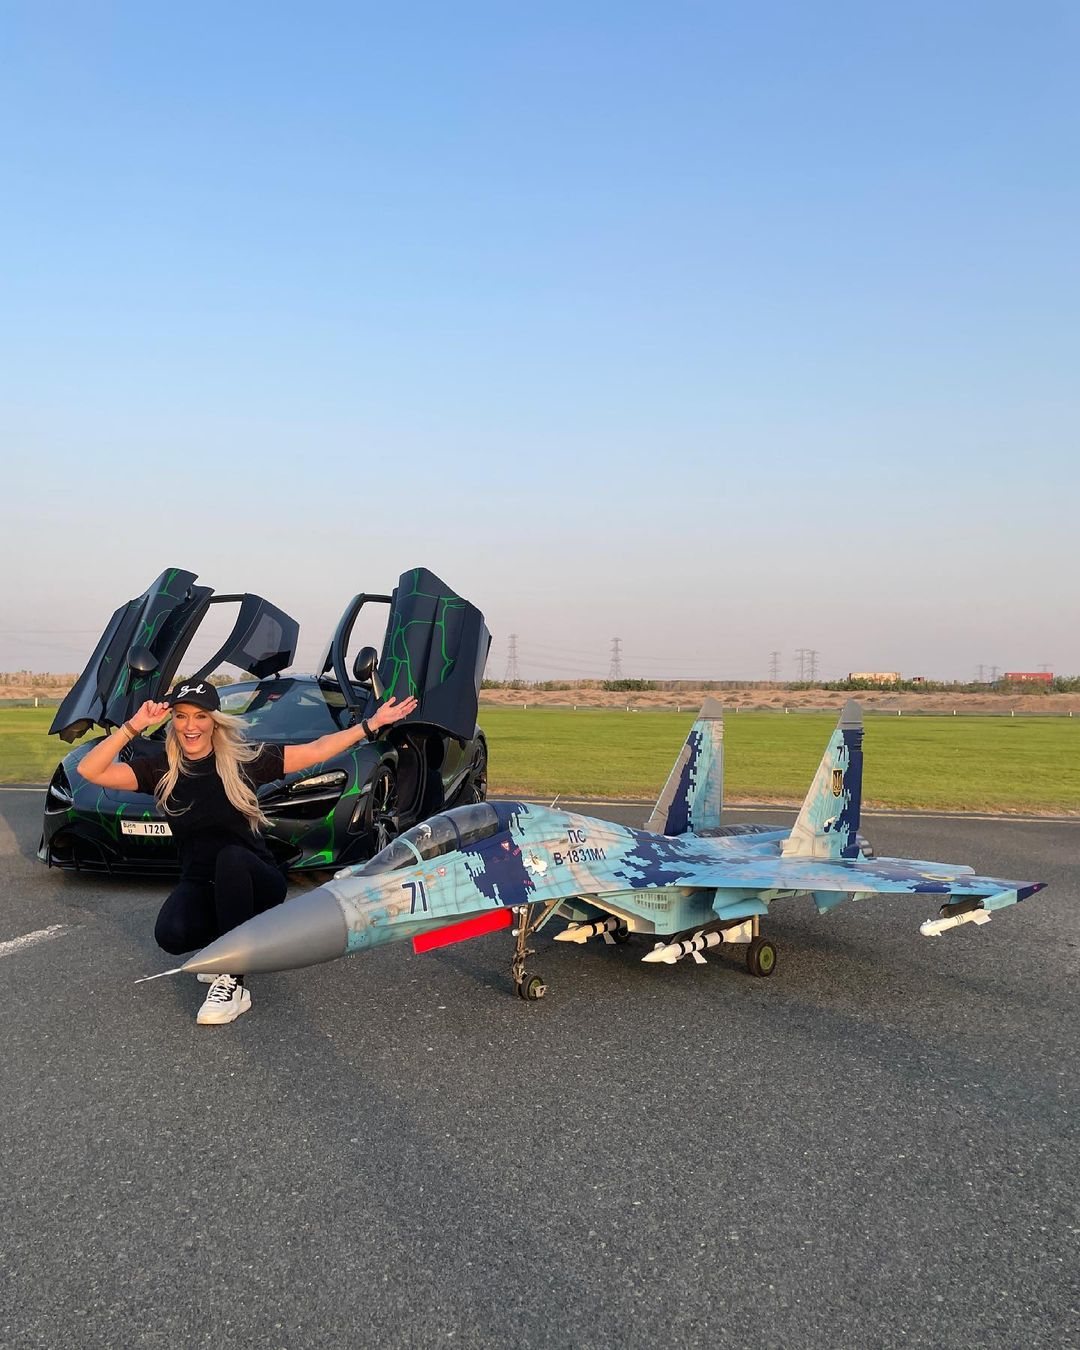 Replica RC Jet Fighter vs. Me  who wins???  vid out soon  #rcplanes # – Alexandra Mary – supercar blondie